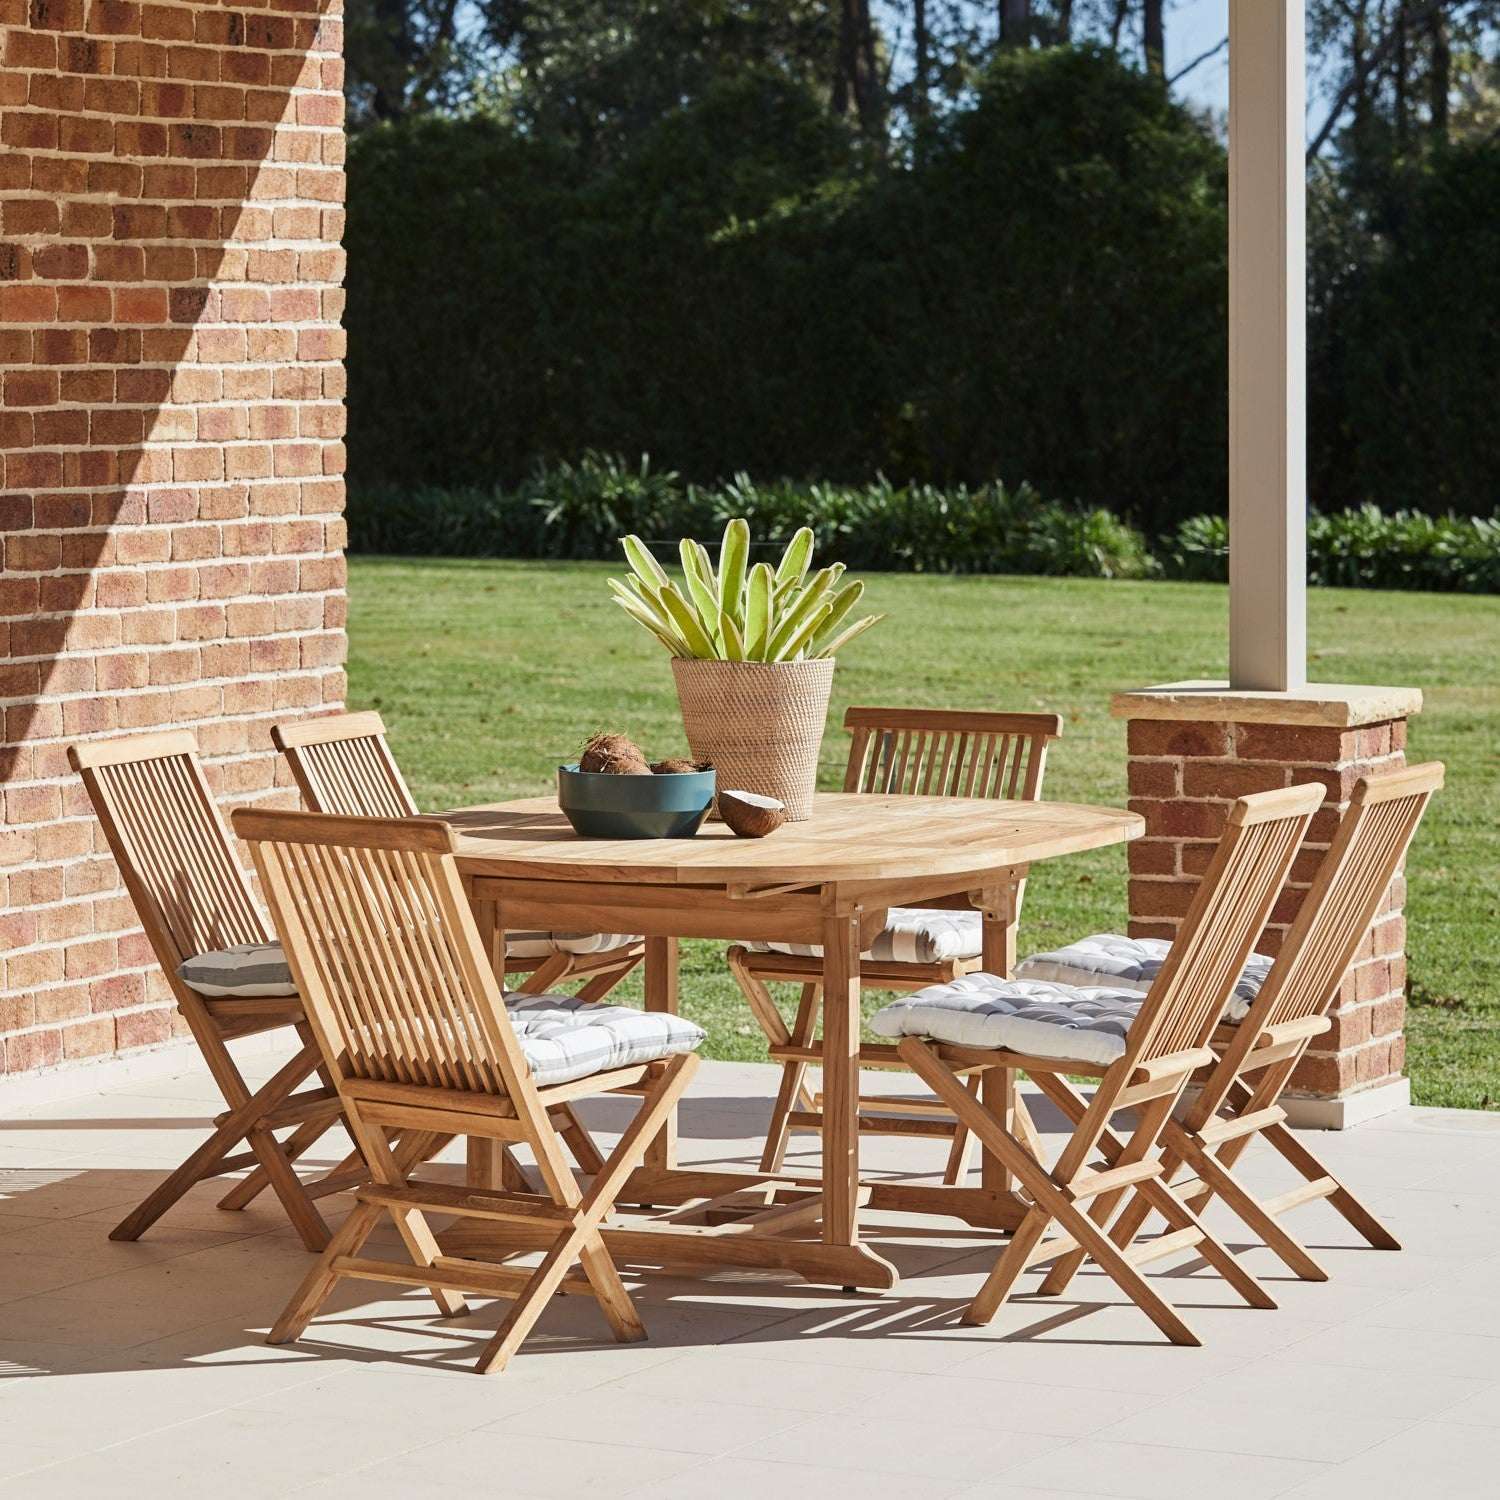 Teak-Round-outdoor-table-setting-classic-r1